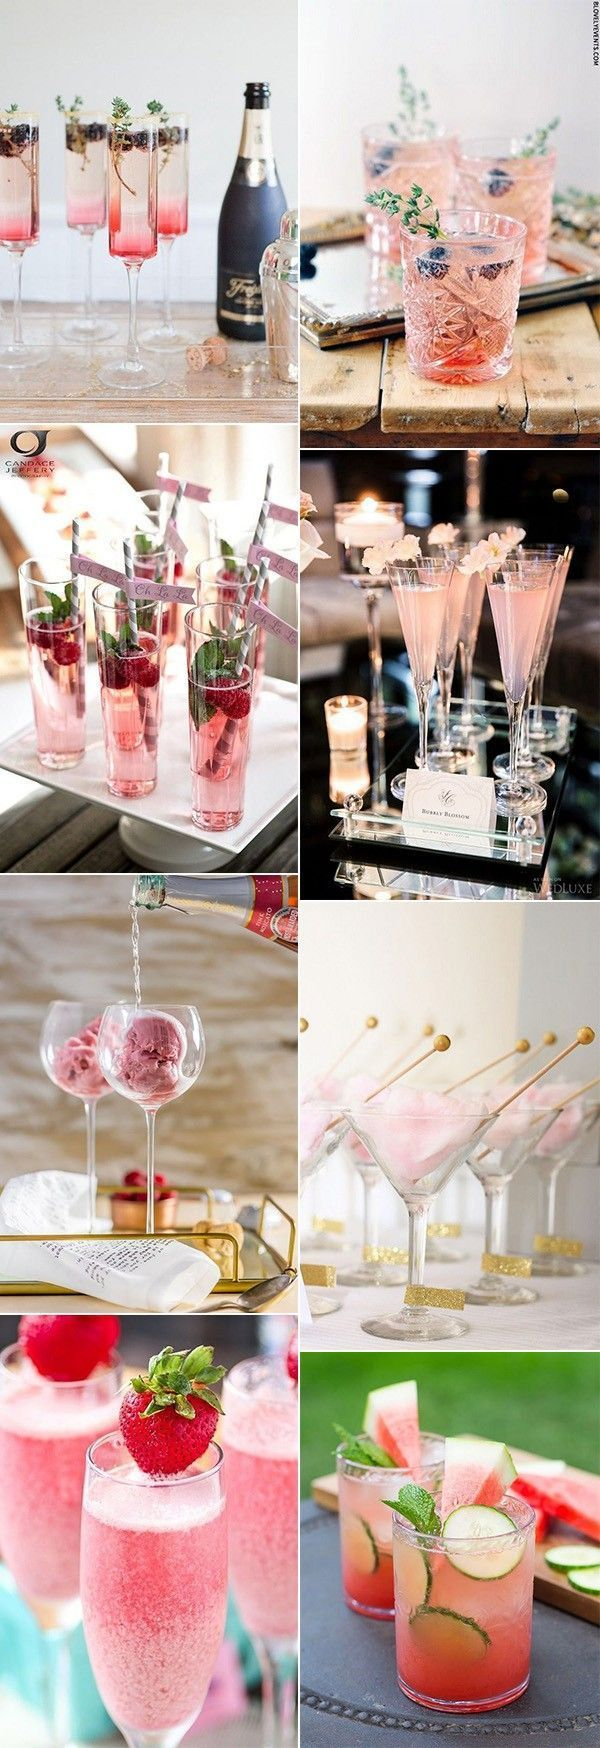 15 Unique Wedding Signature Drink Ideas for Your B…